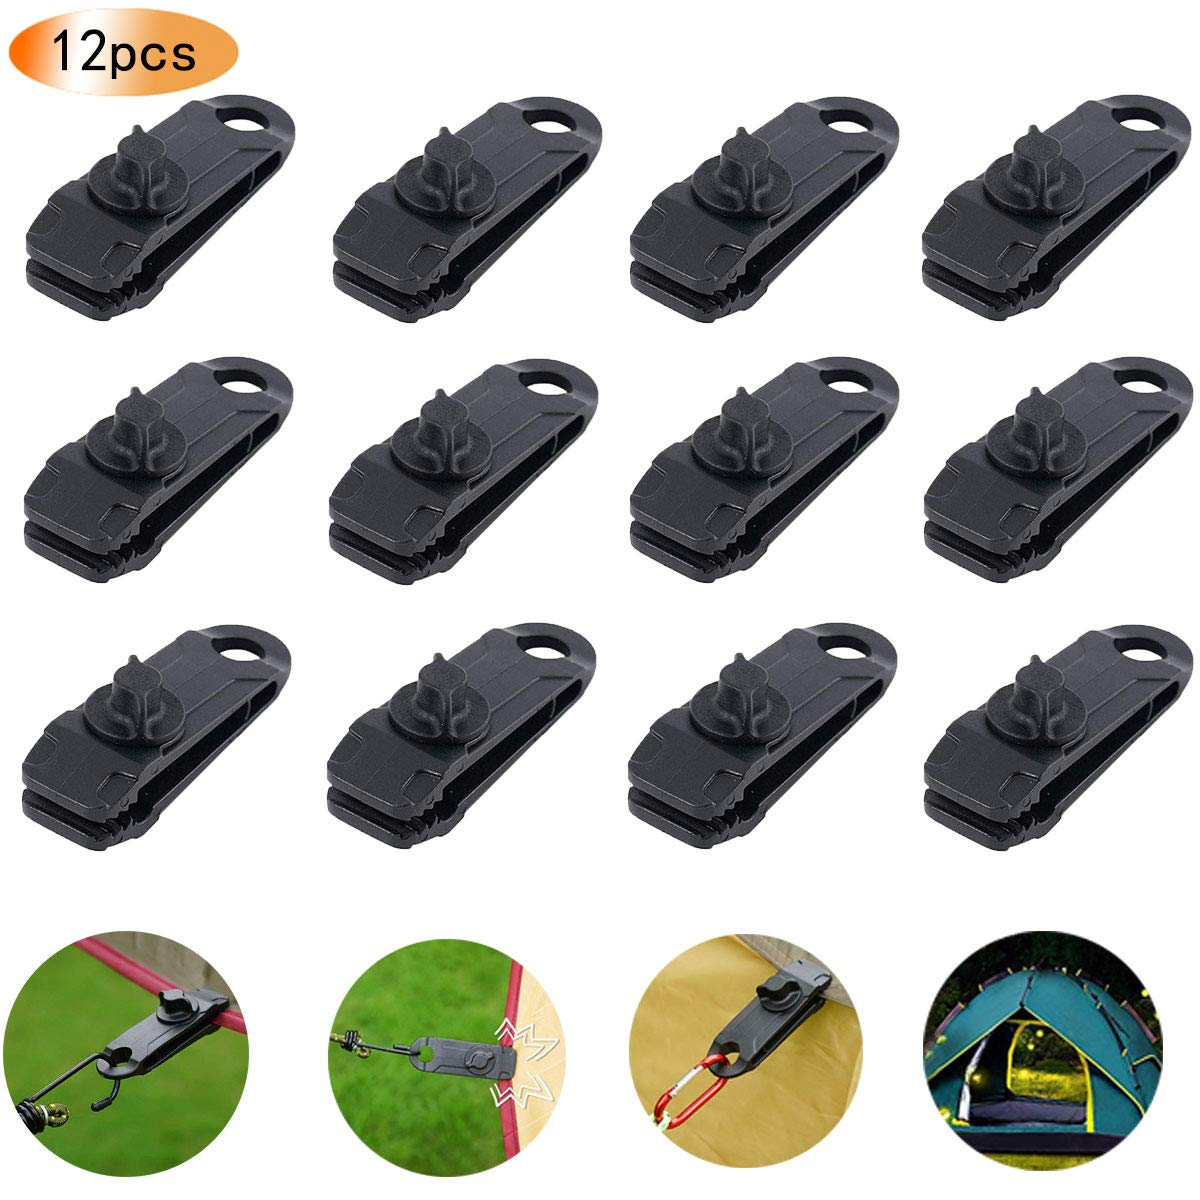 12pcs Tarp Clips, Heavy Duty Lock Grip Clamps Thumb Screw Tent Clip Awning Clamp Set Trap Clips Jaw Tent Snaps Tarps Canopies and Covers Locking Clamp Design for Outdoors Camping Farming Garden Tarps by GTOMIPO